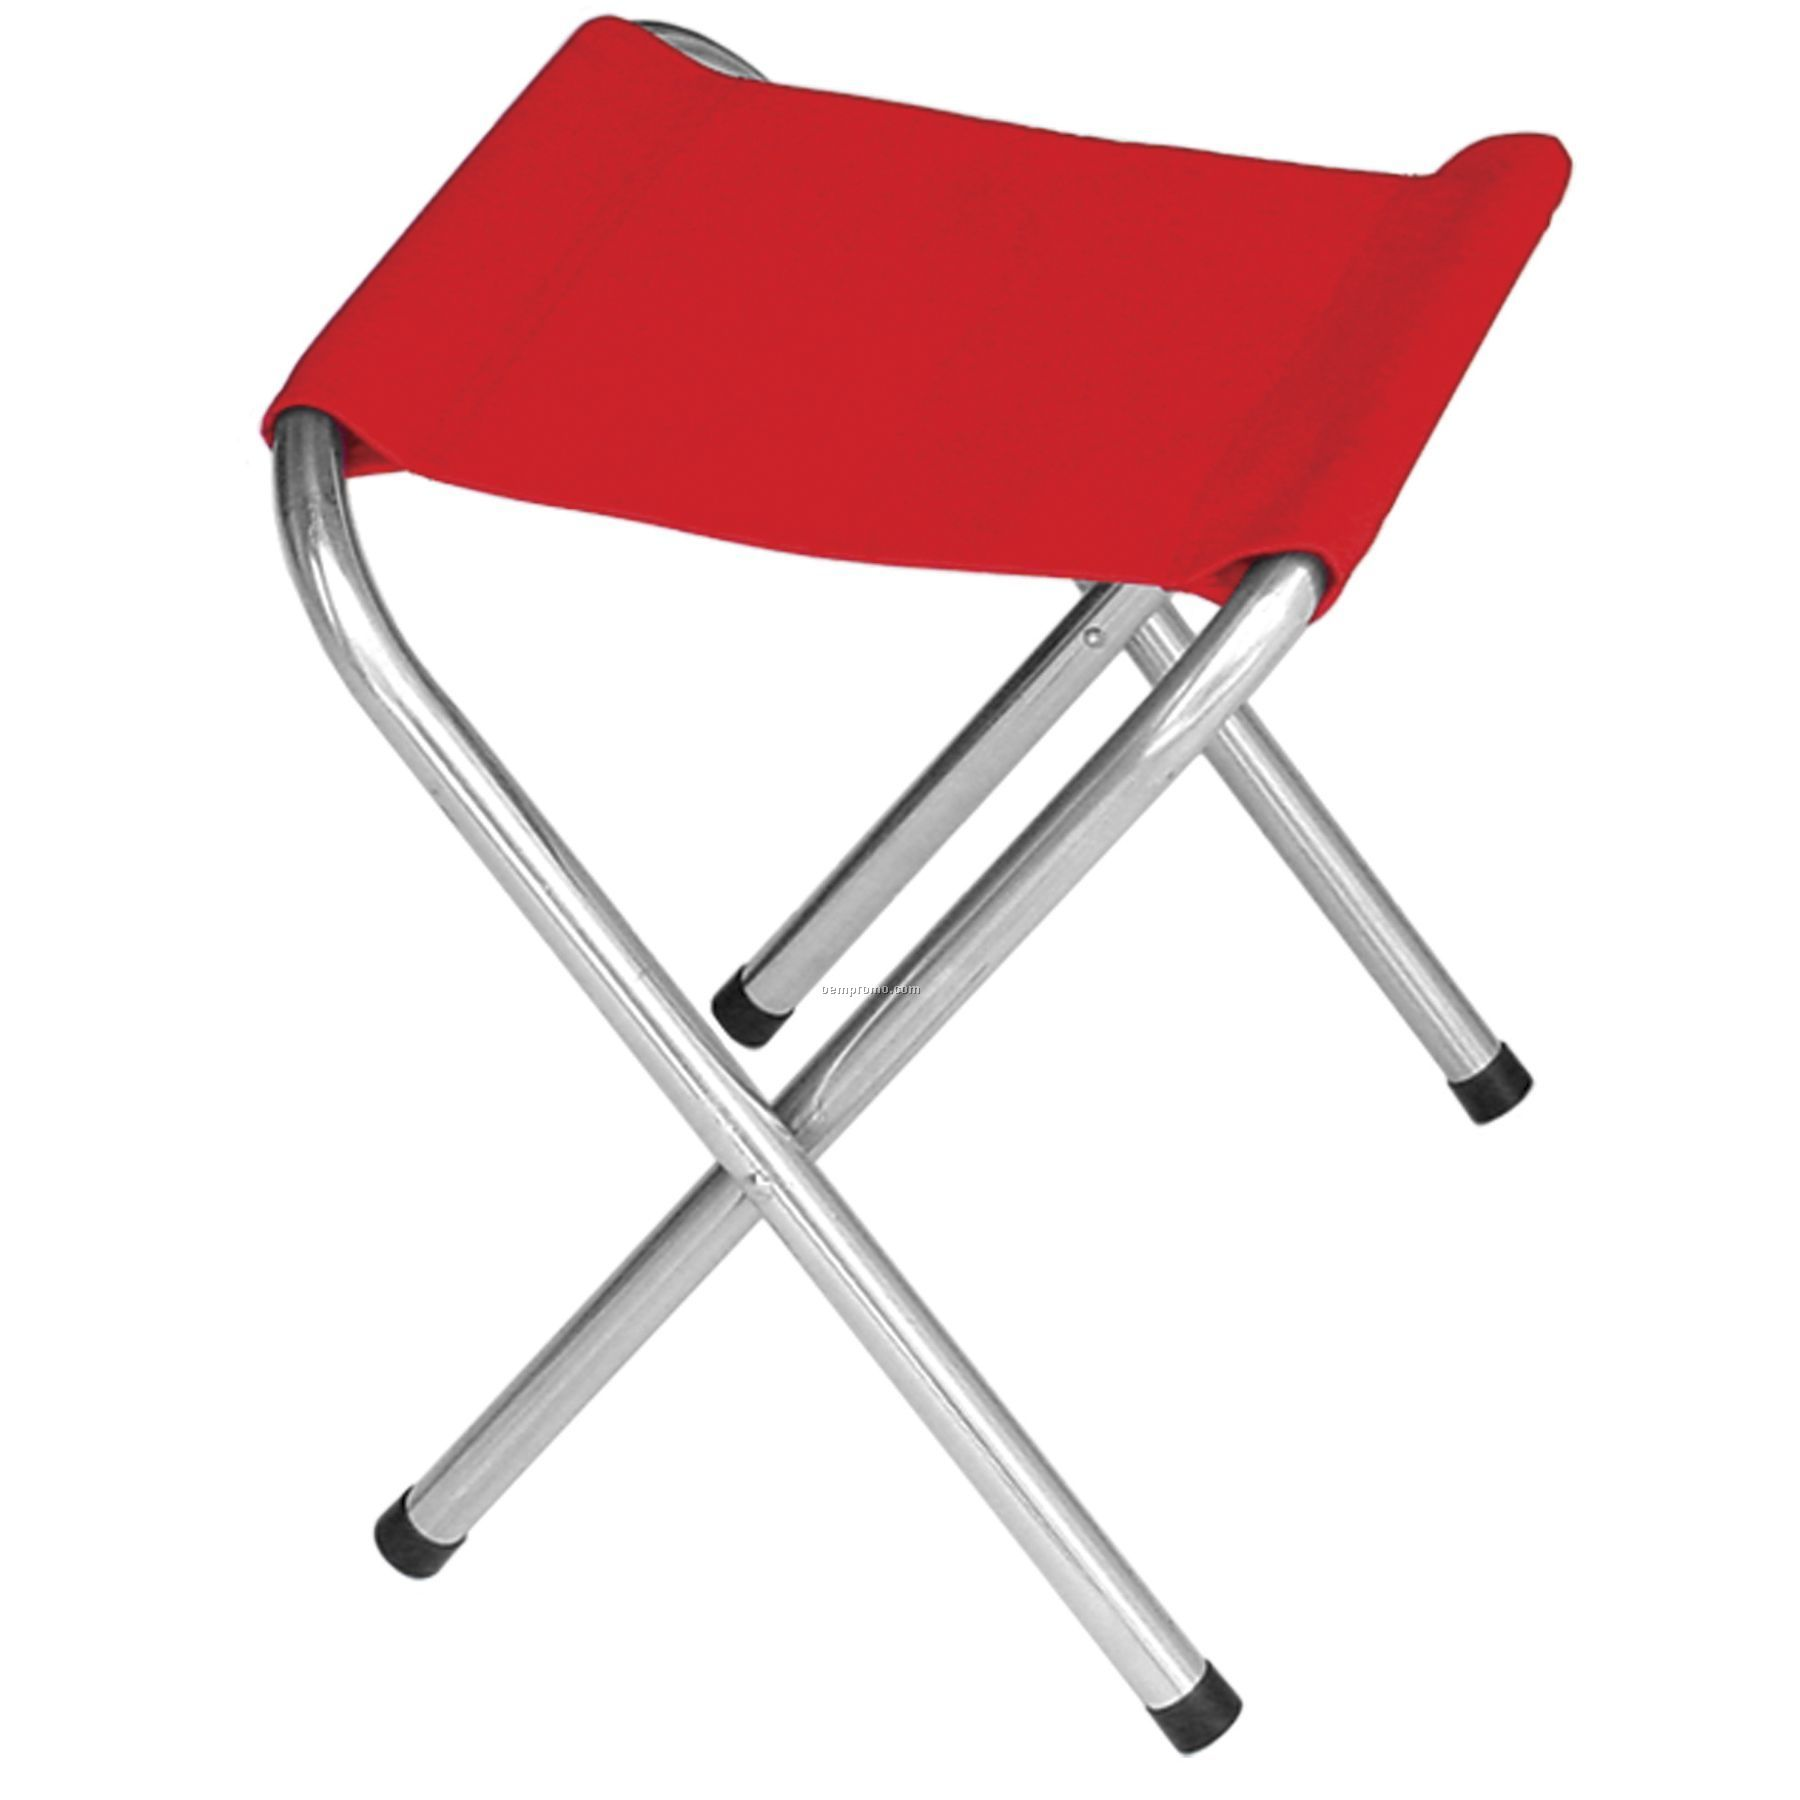 Us Made Folding Golf/Recreation Stool With Full Color Digital Imprint